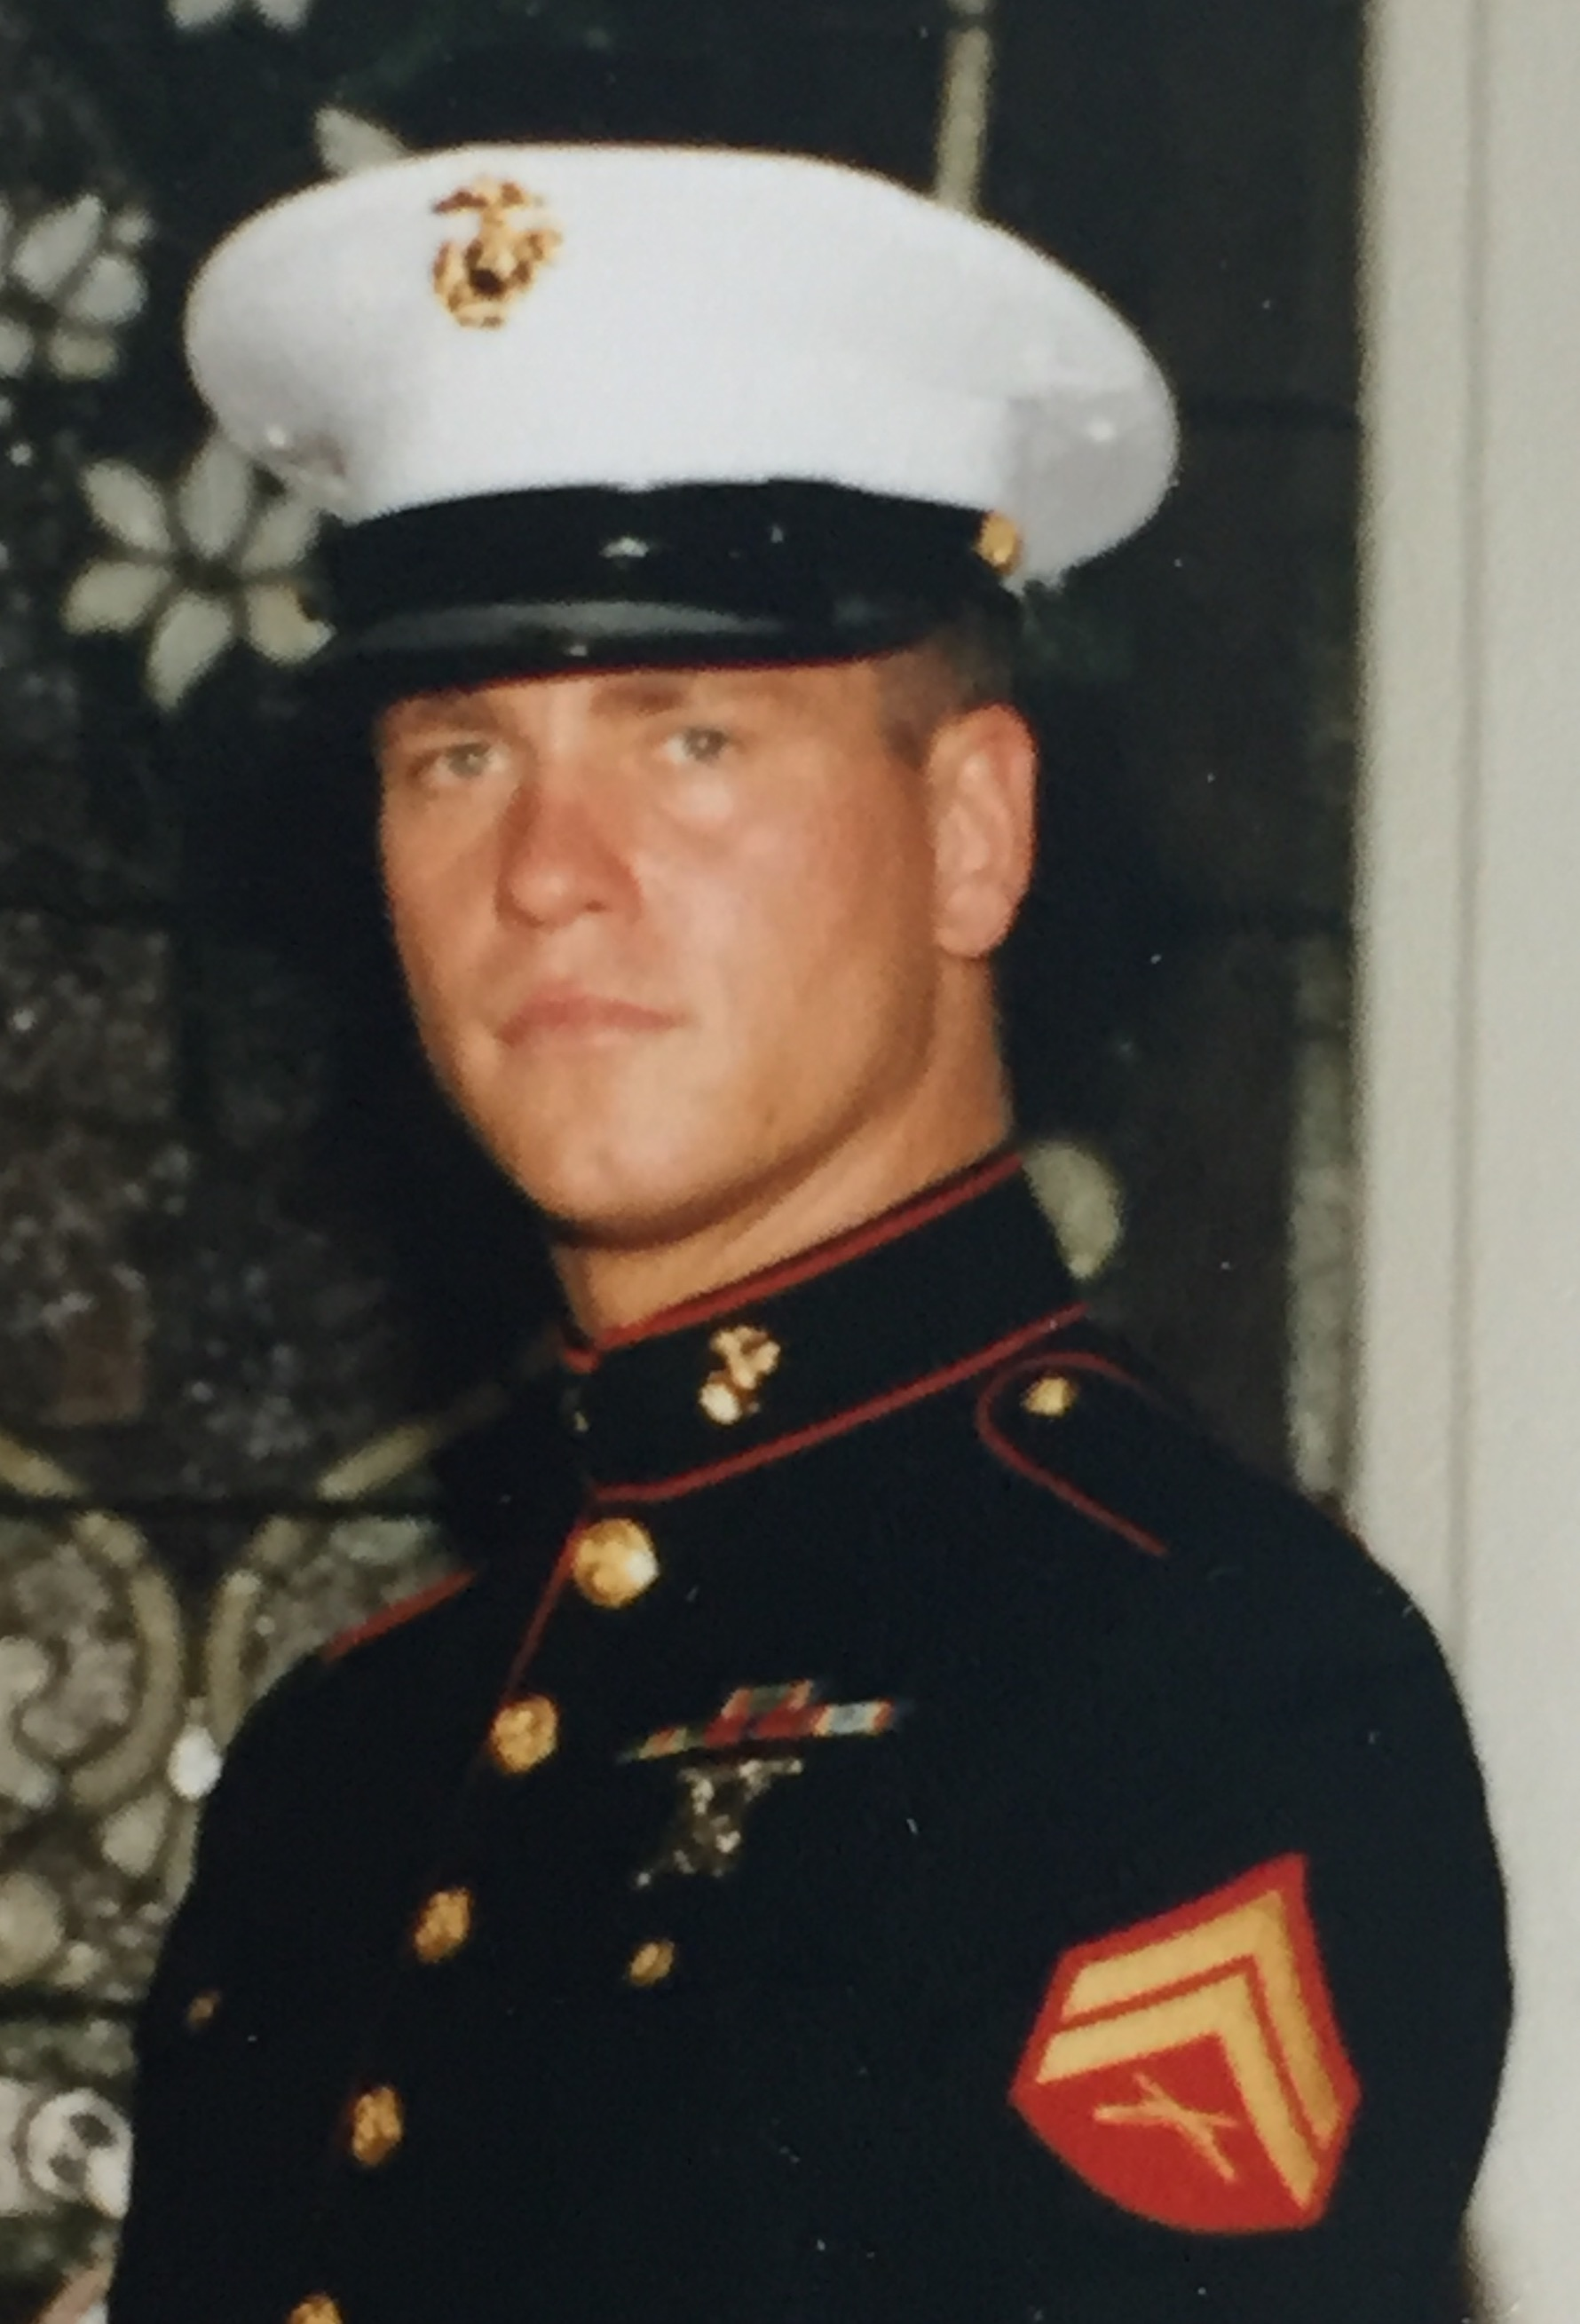 Christopher Wright, Corporal USMC